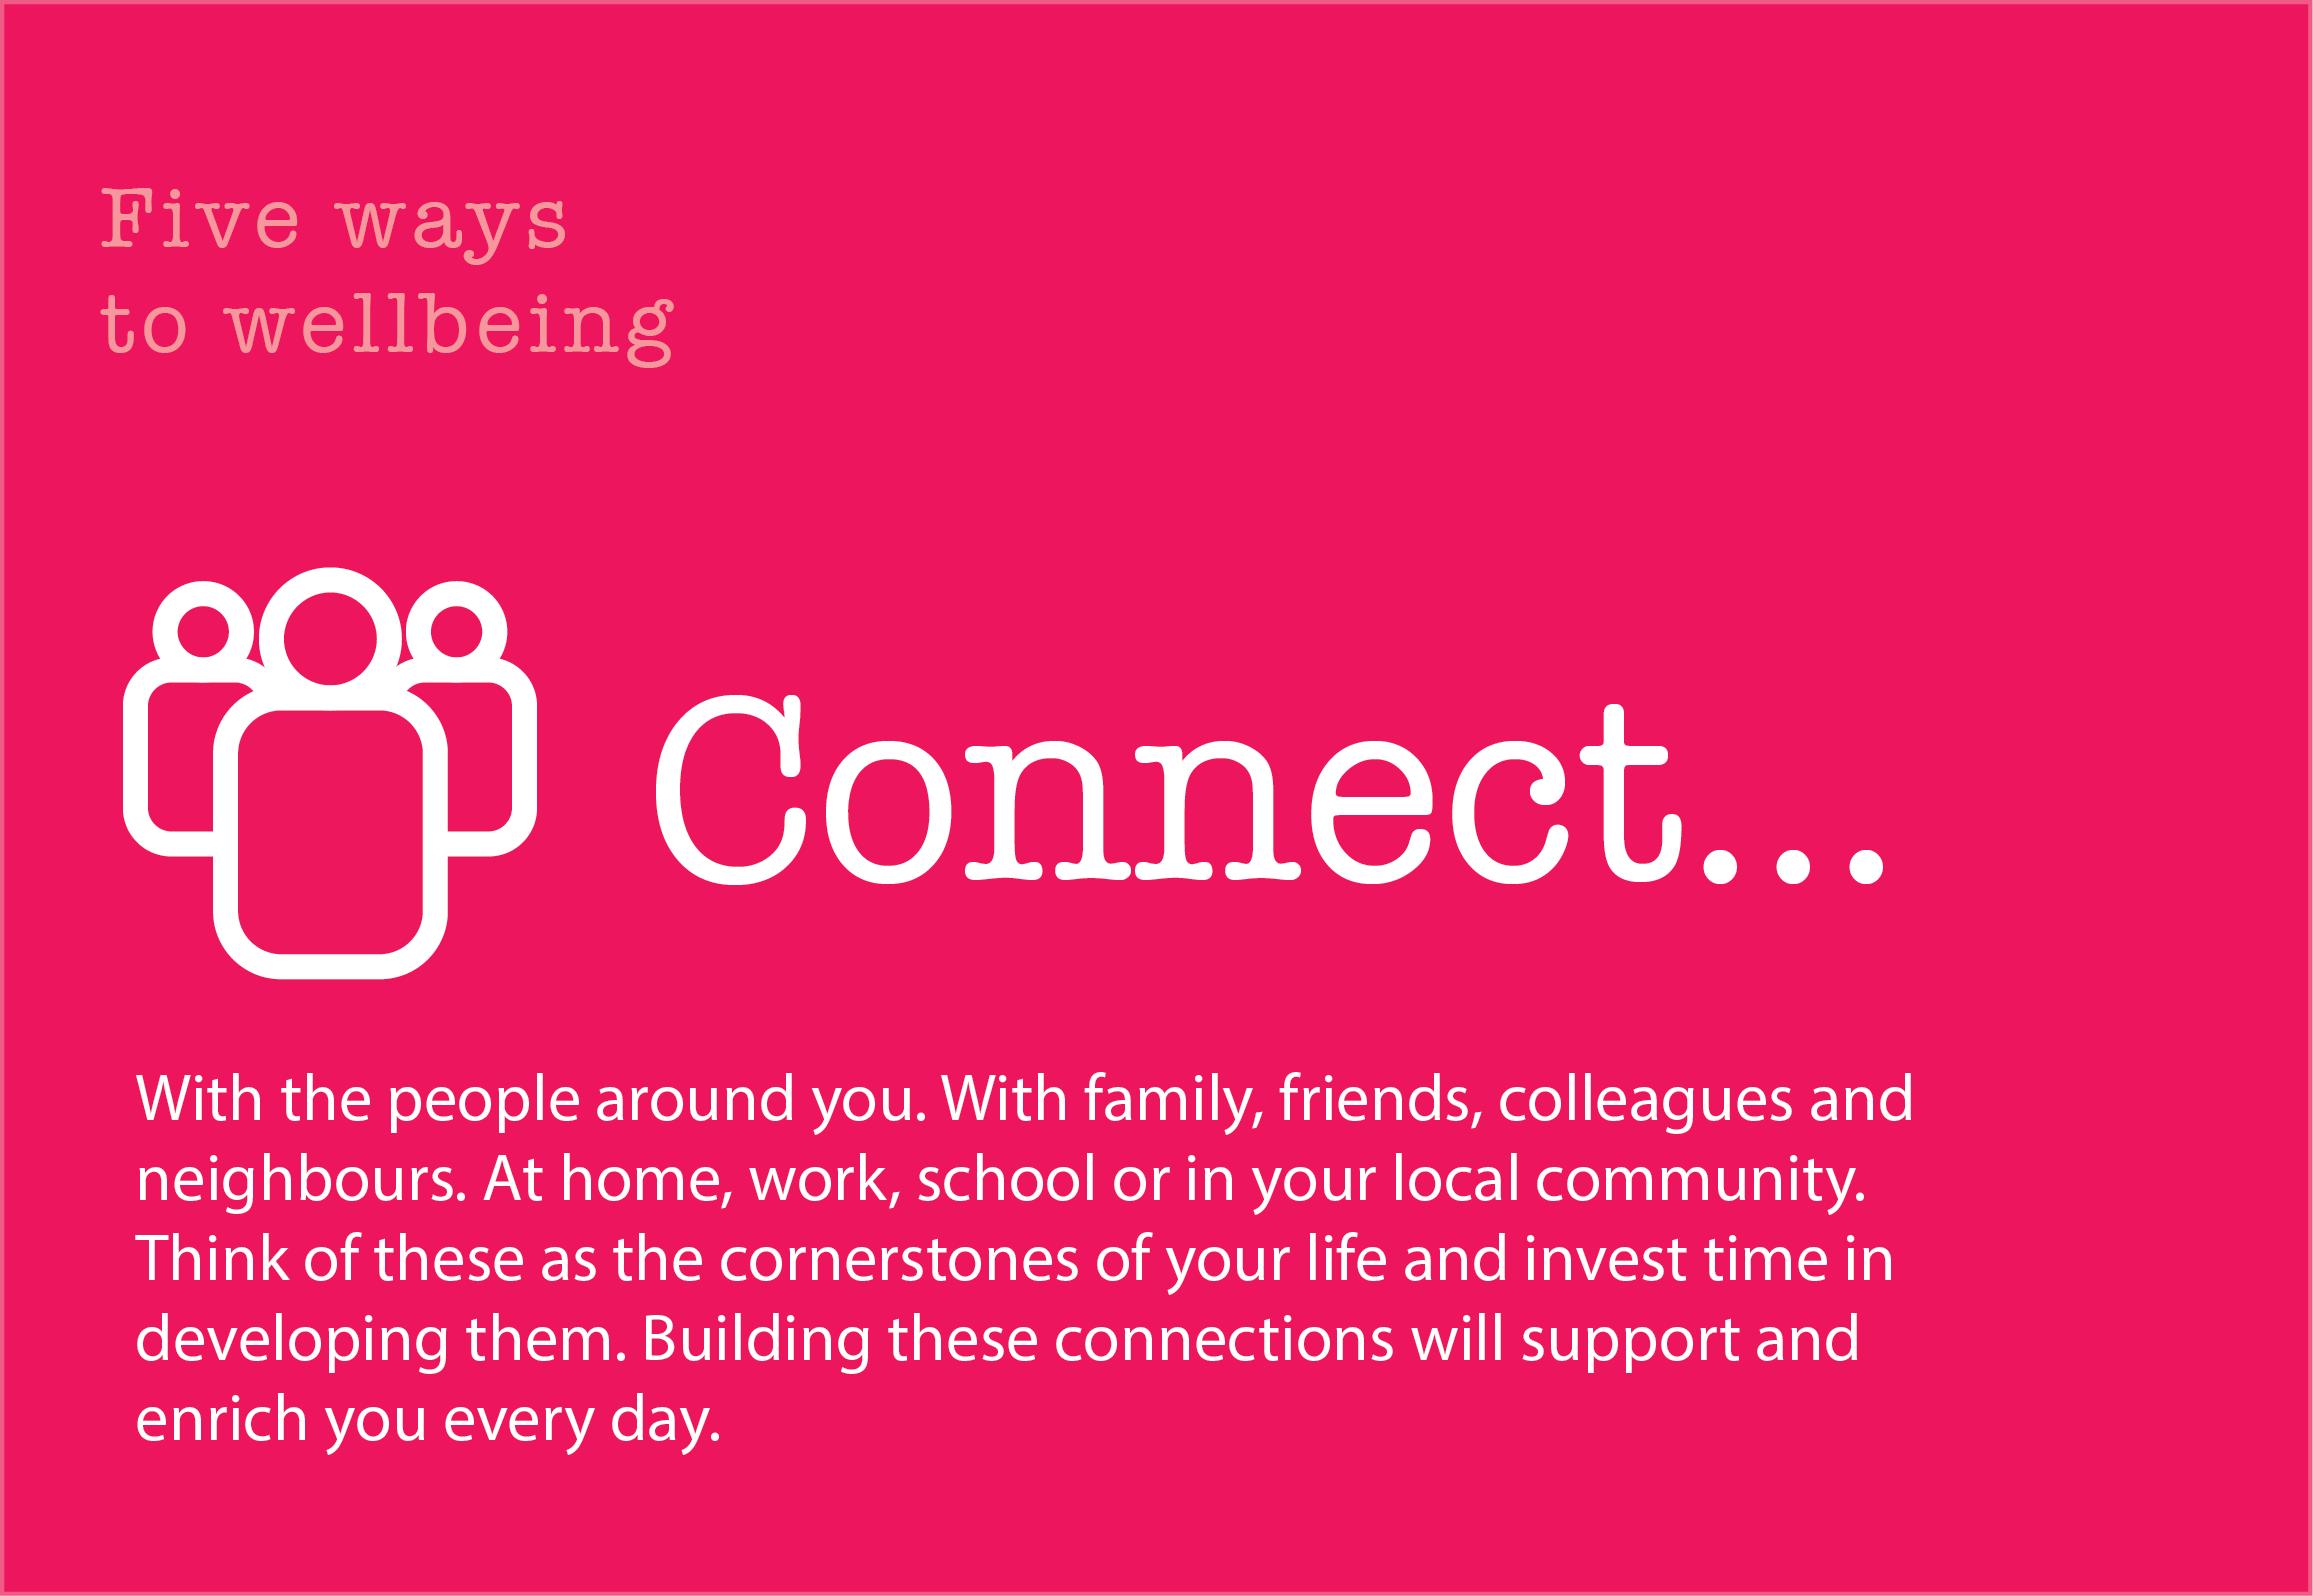 5 Ways to Wellbeing: Connect. With the people around you. With family, friends, colleagues and neighbours. At home, work, school or in your local community. Think of these as the cornerstones of your life and invest time in developing them. Building these connections will support and enrich you every day.